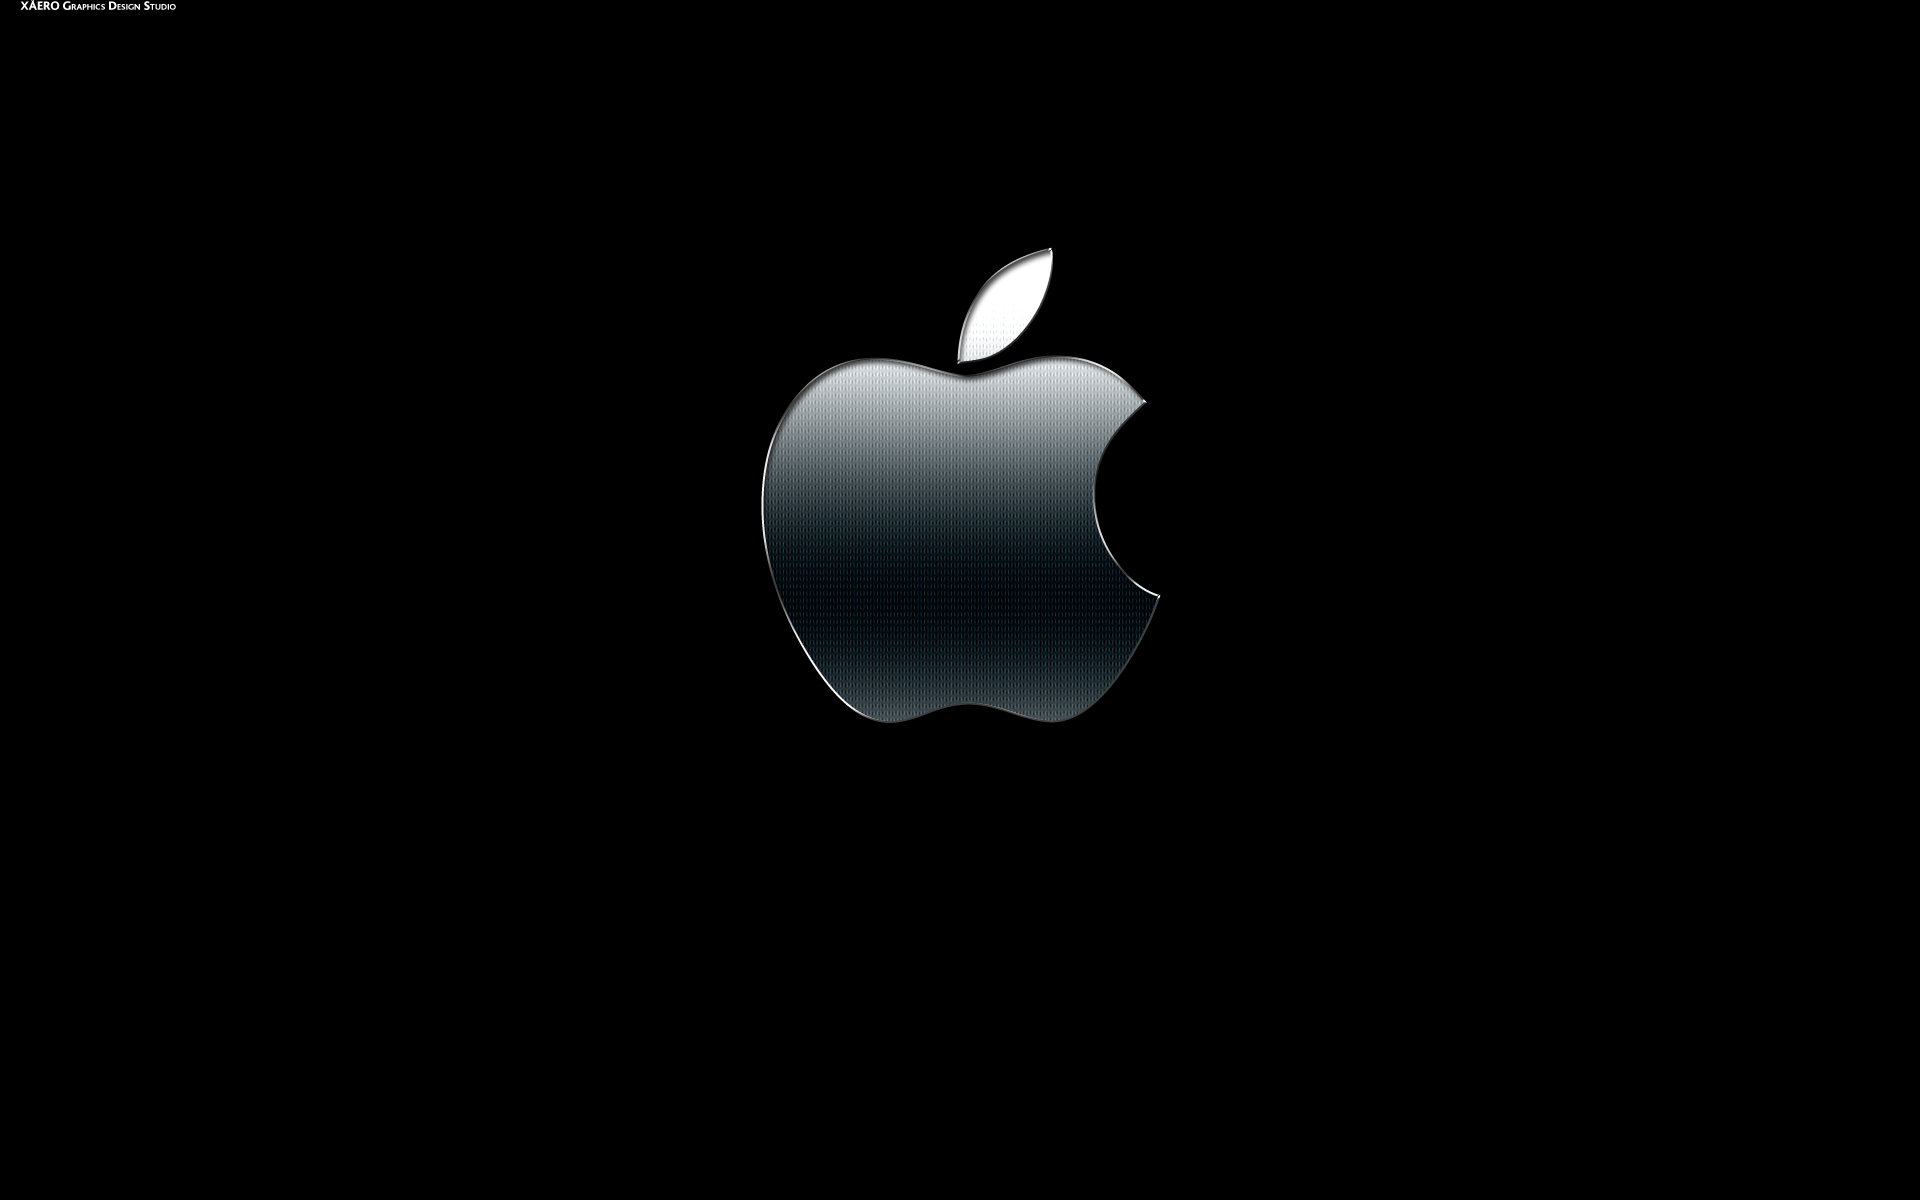 PC wallpaper cool wallpaper Apple 1920x1200